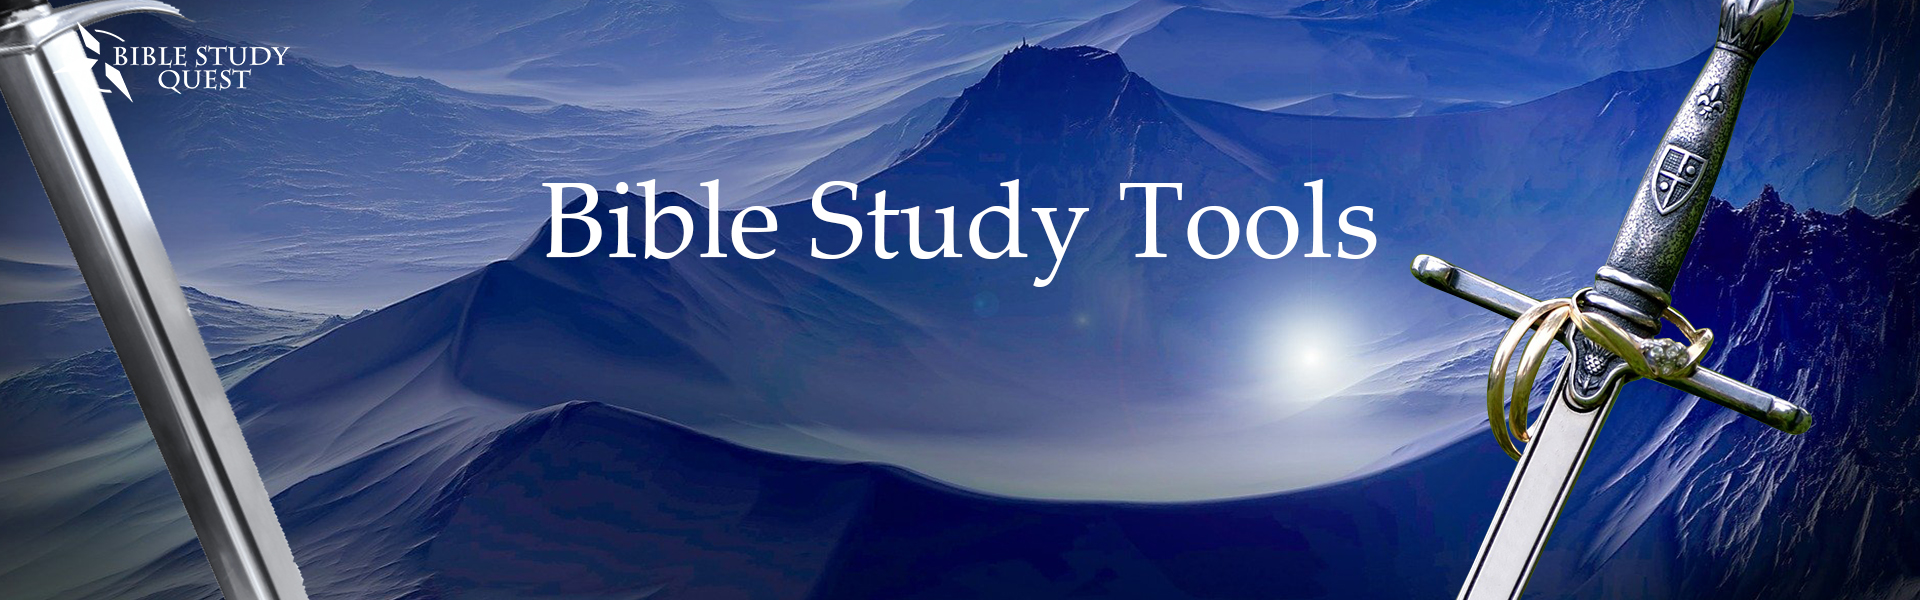 Bible Study Tools with sword and blue mountain valleys